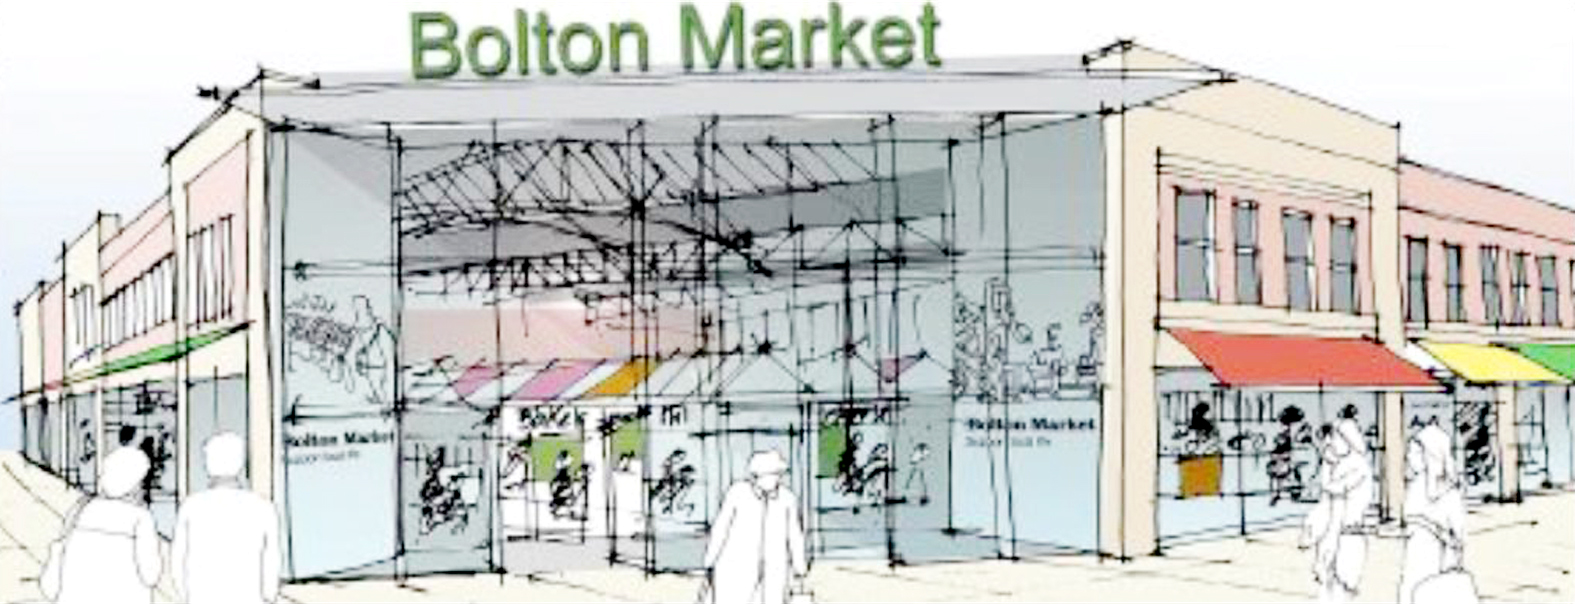 Revealed: How chip shop scuppered grand plans for £440,000 glass entrance at Bolton Market